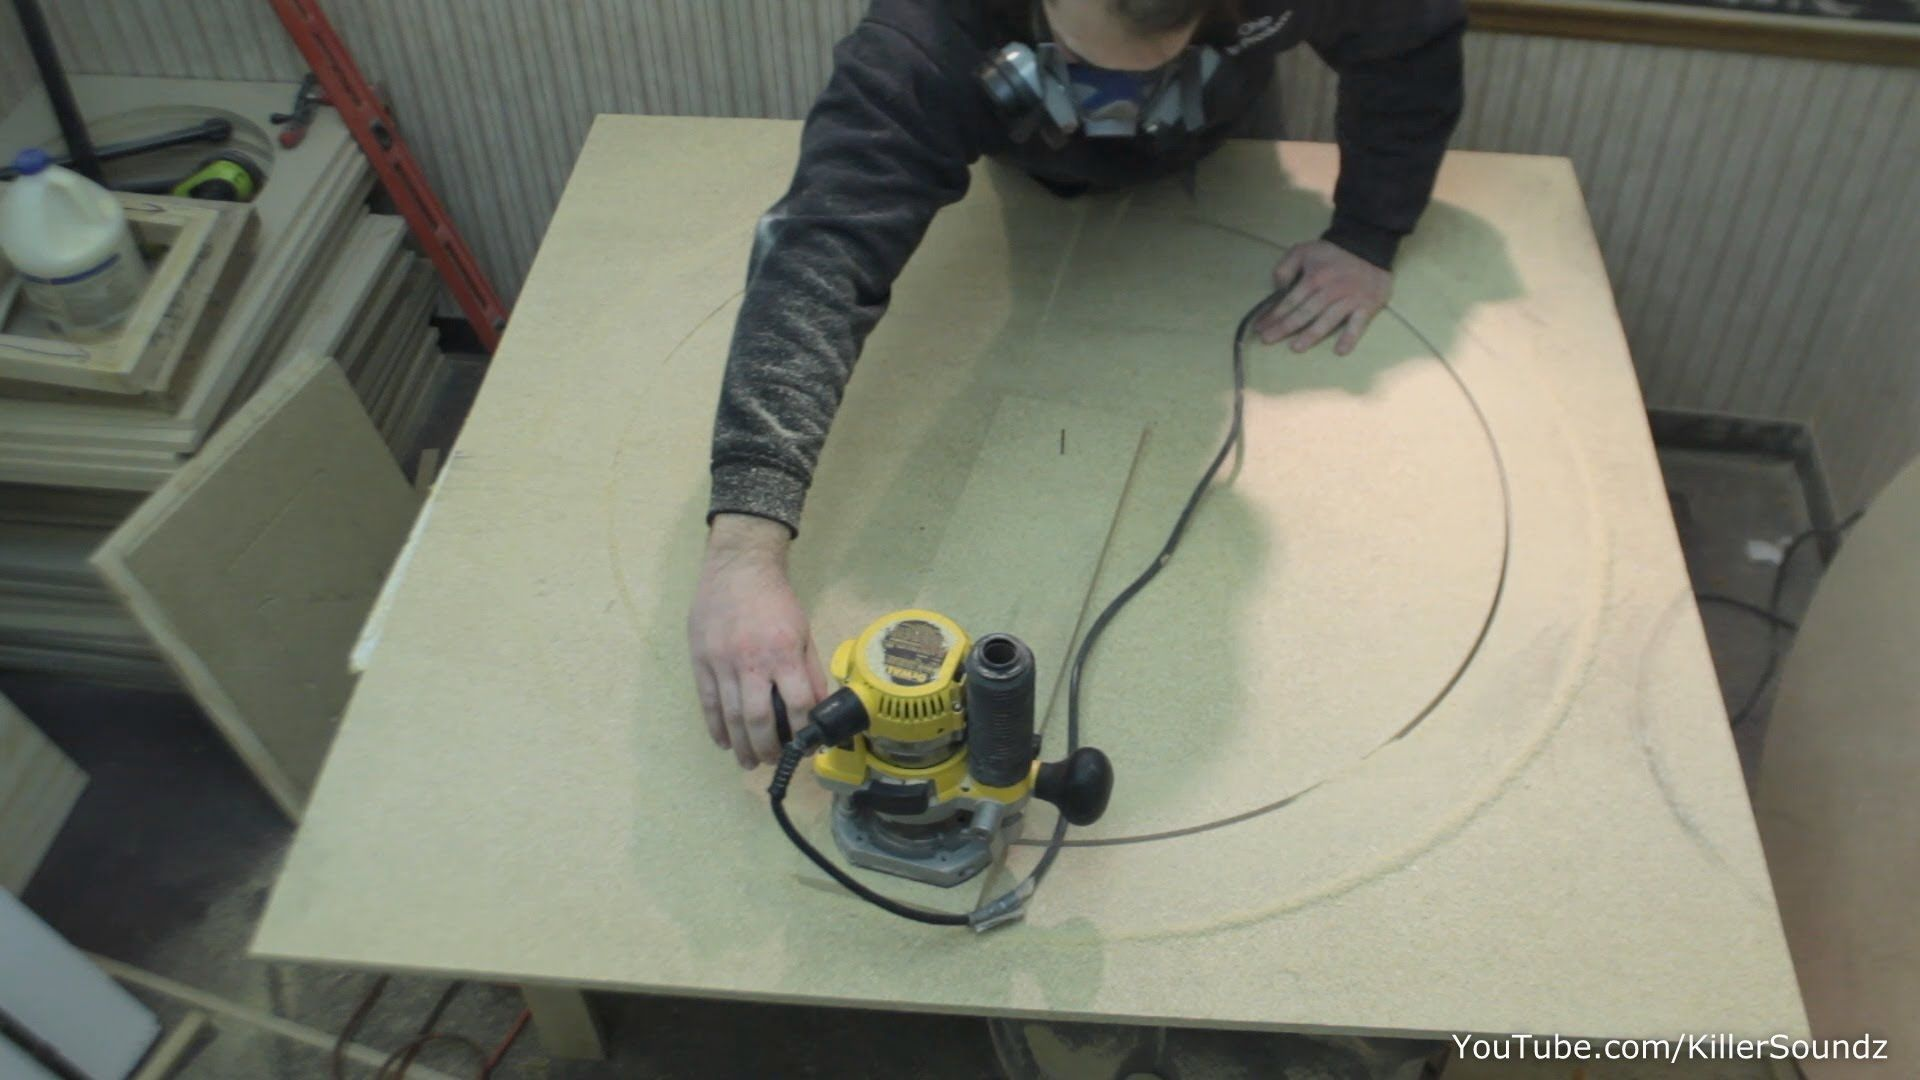 How To Make A Large Circle Jig Quick Easy Router Tips Woodworking Jigsaw Wood Crafts Kids Woodworking Tips